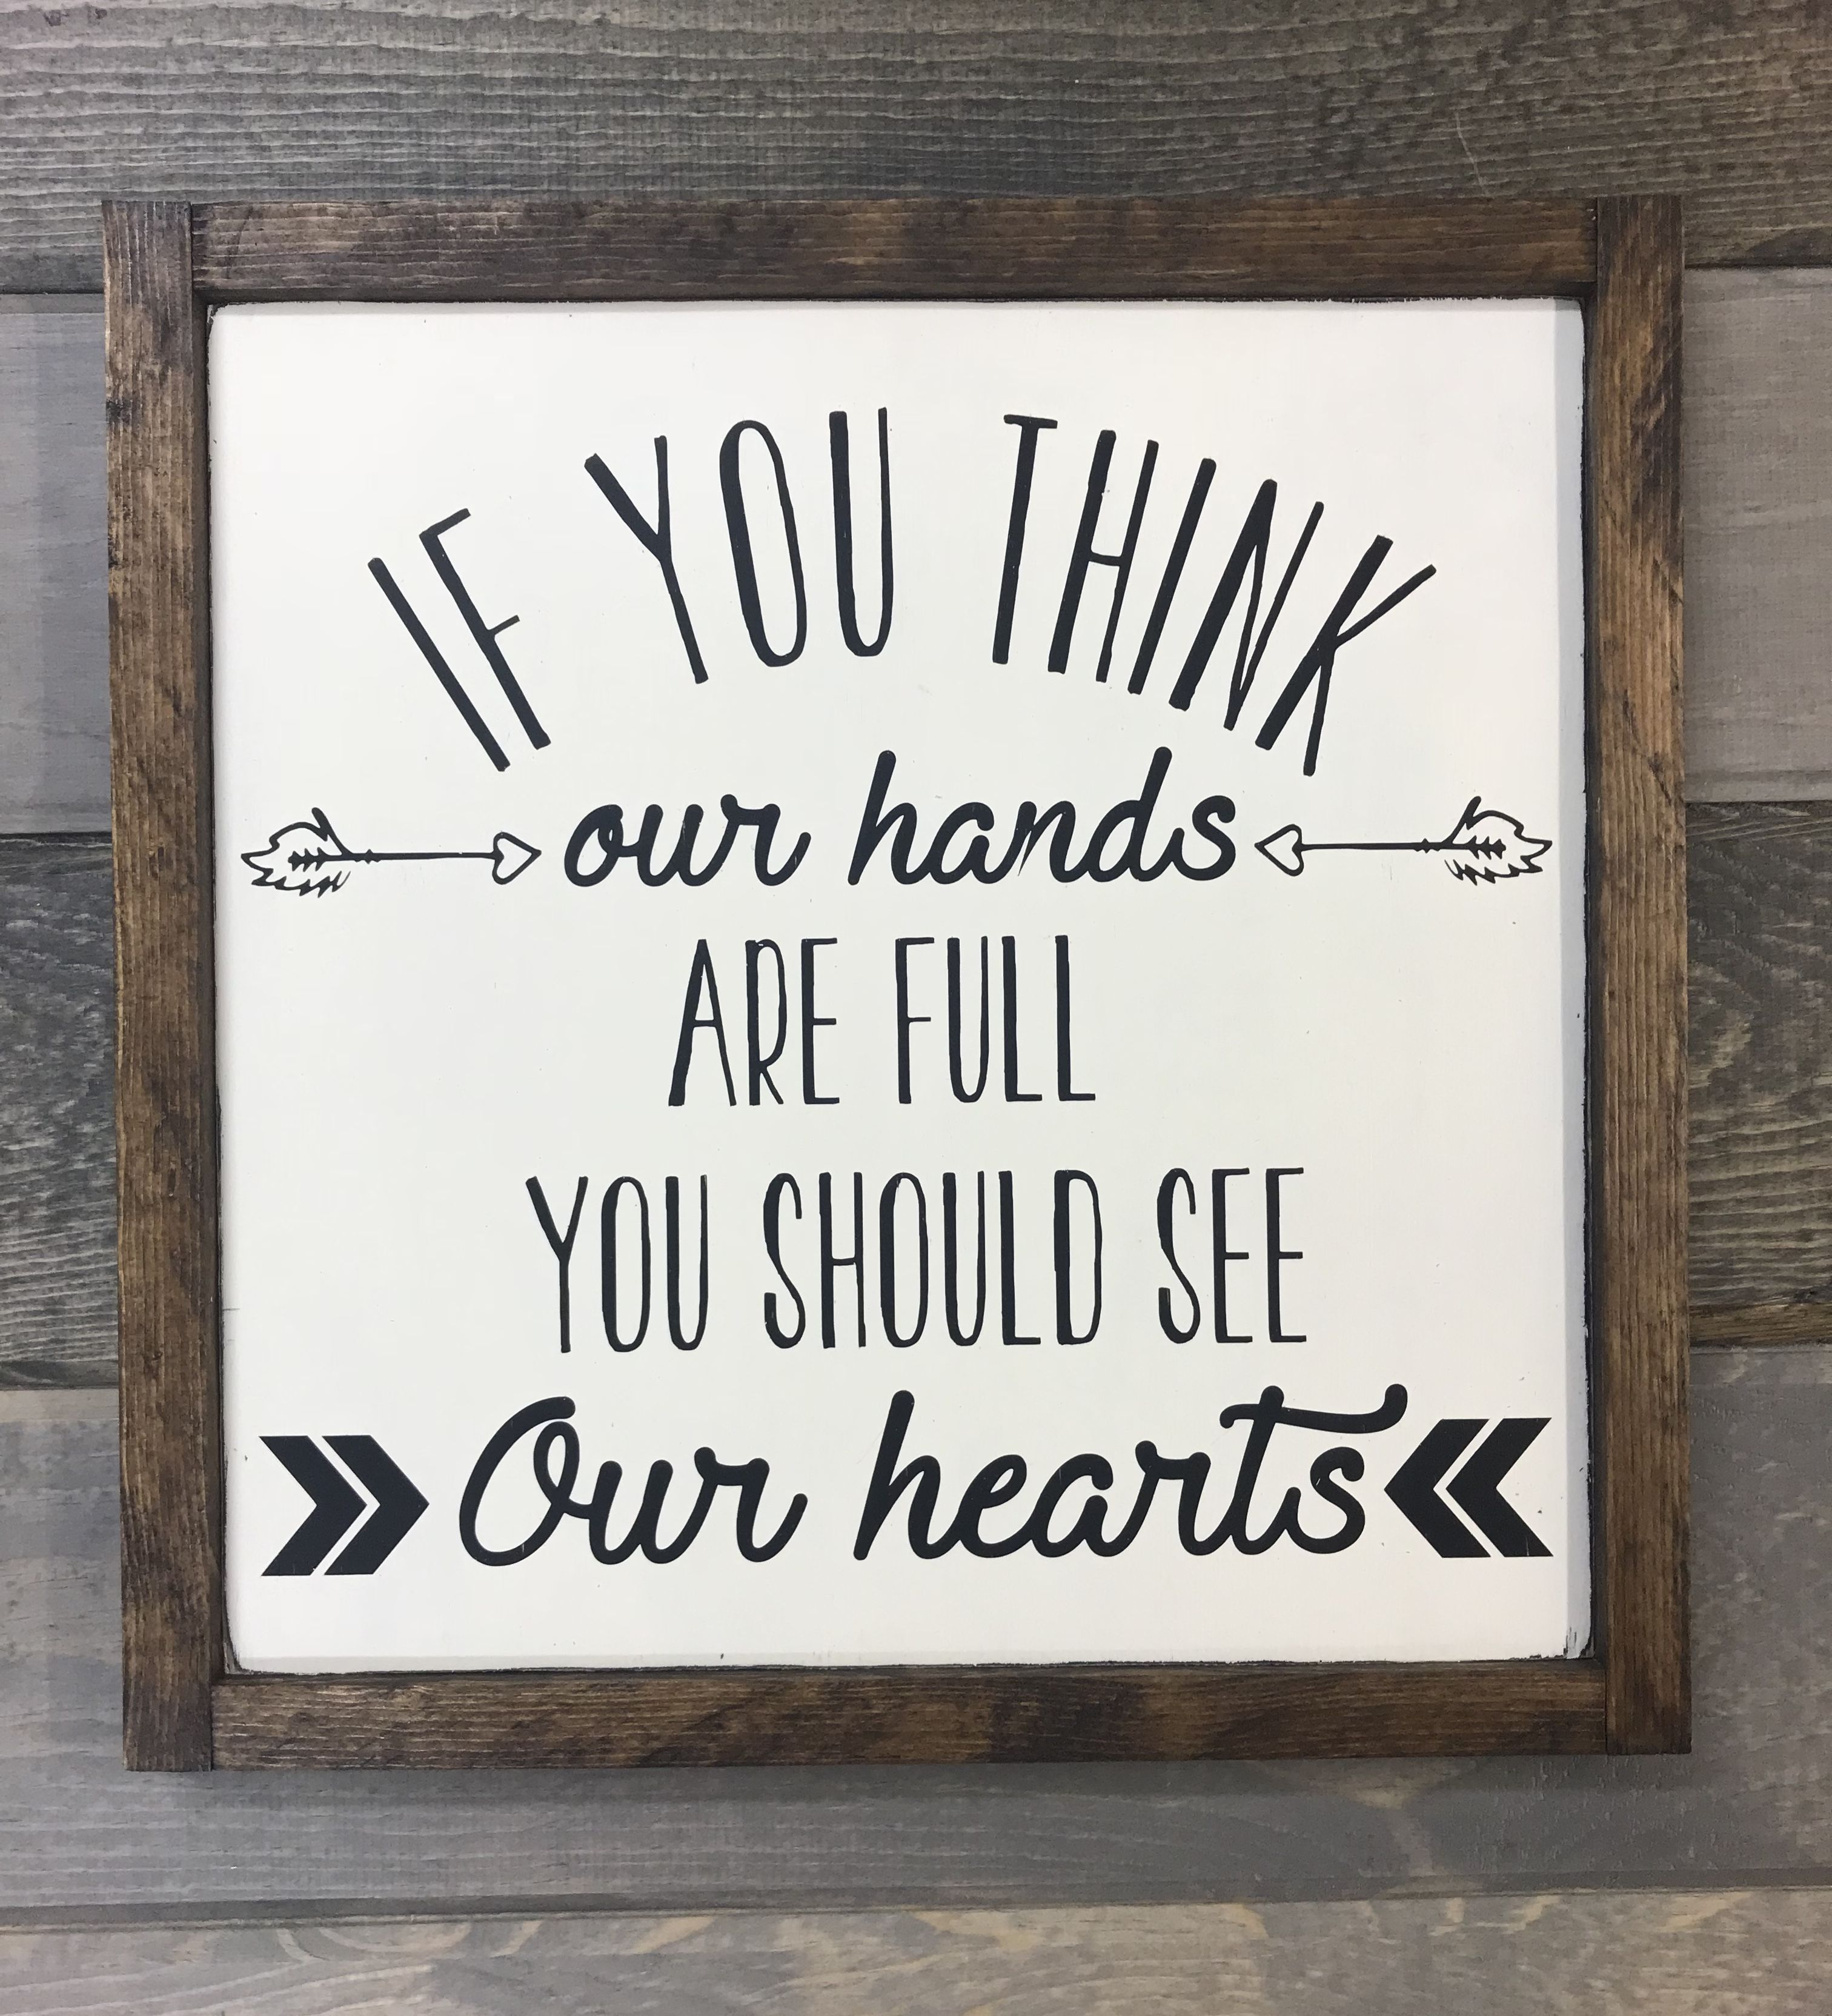 Cute farmhouse style sign with a frame inspirational